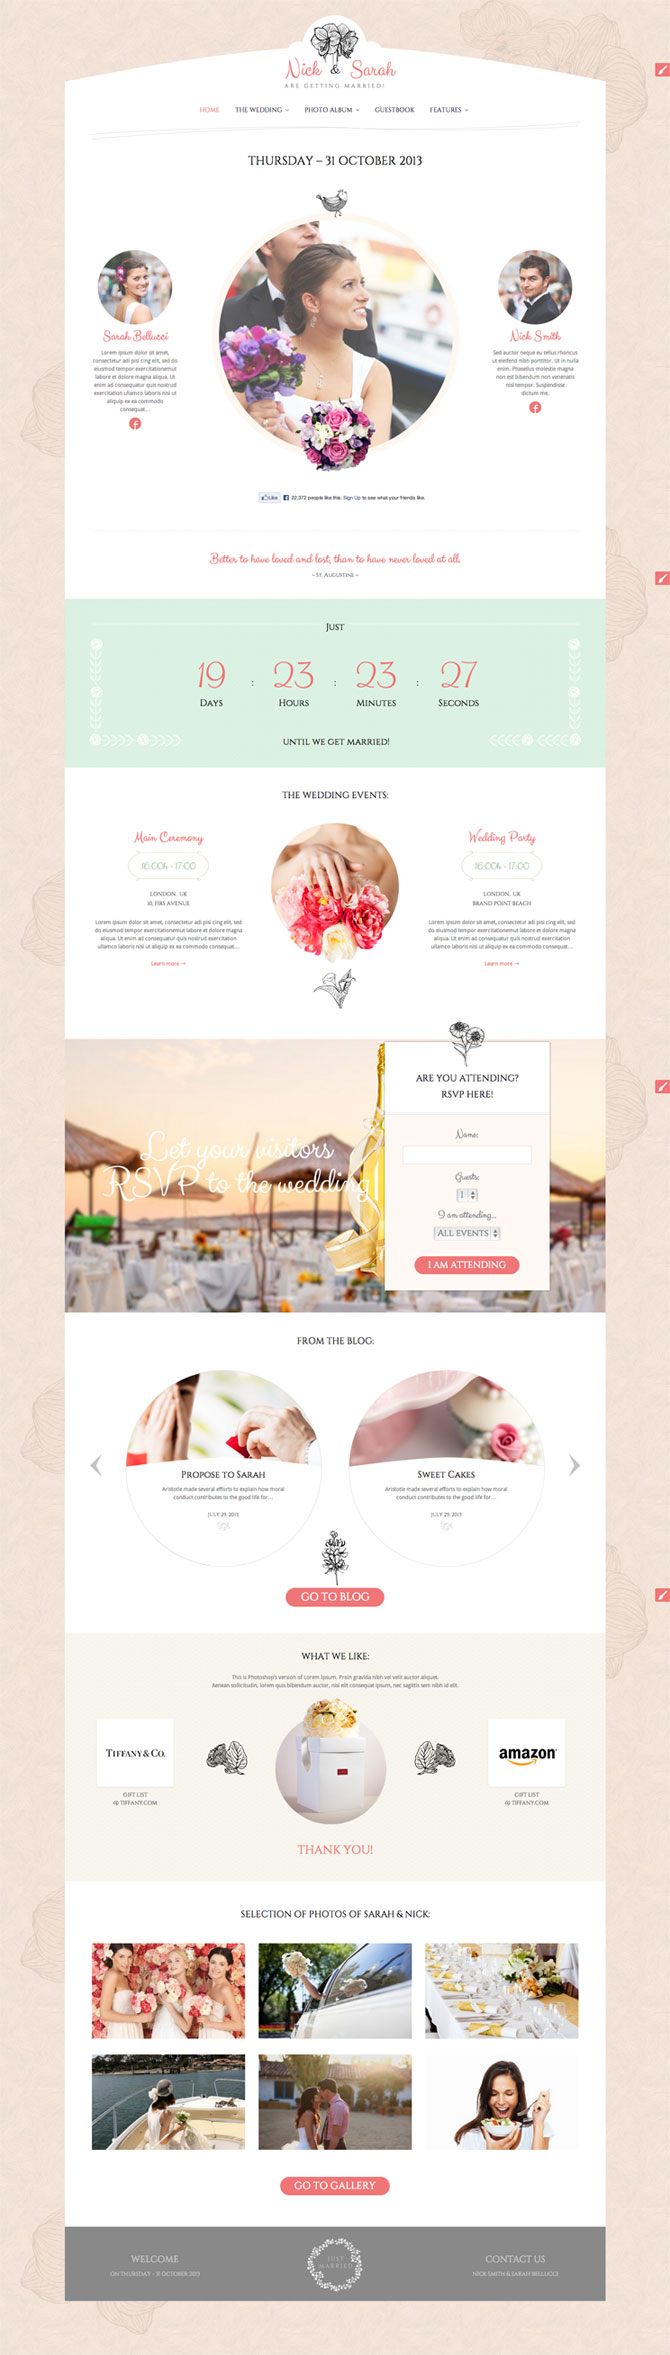 The Wedding Day WordPress Theme